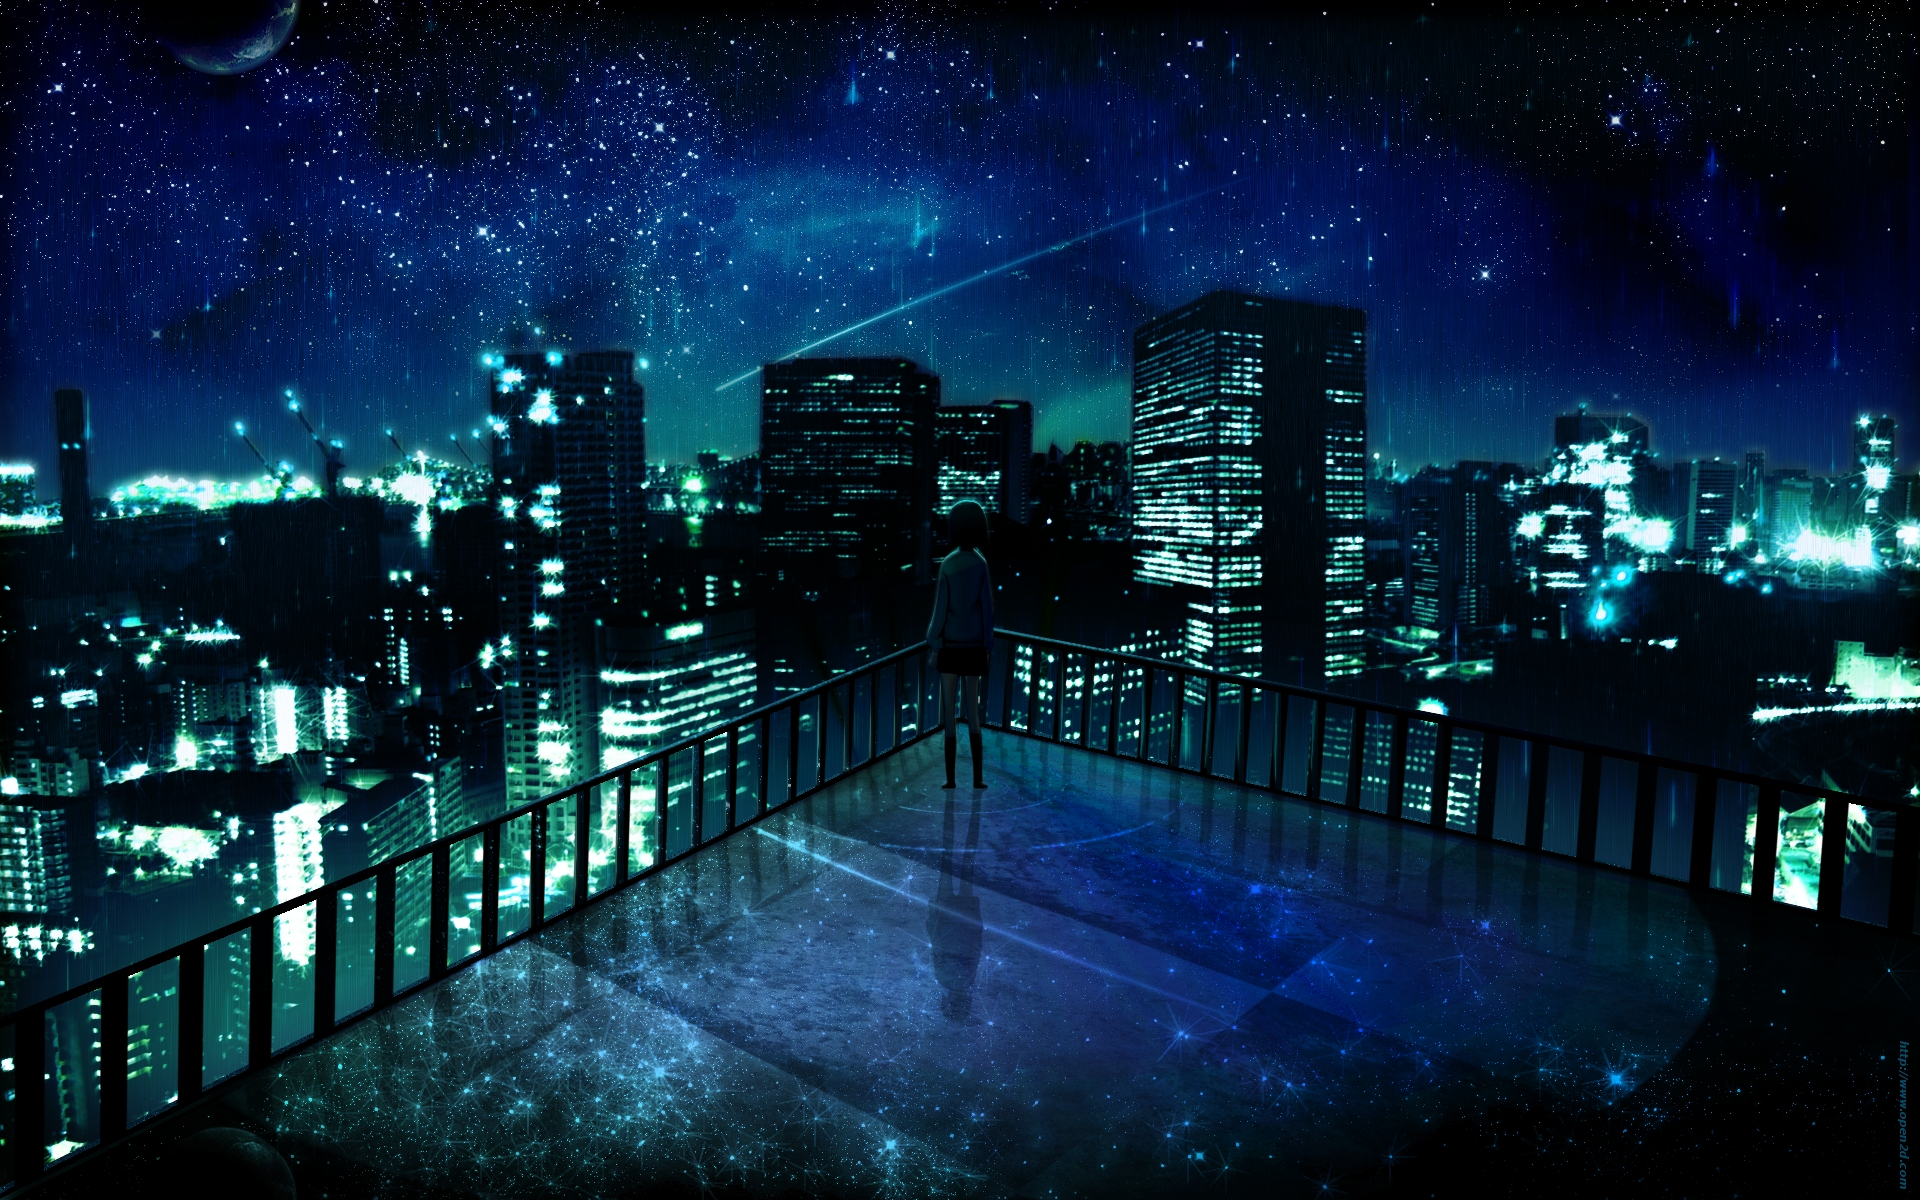 Download Manga Night City Lala Sama Club Ados Design Wallpaper 1920x1200